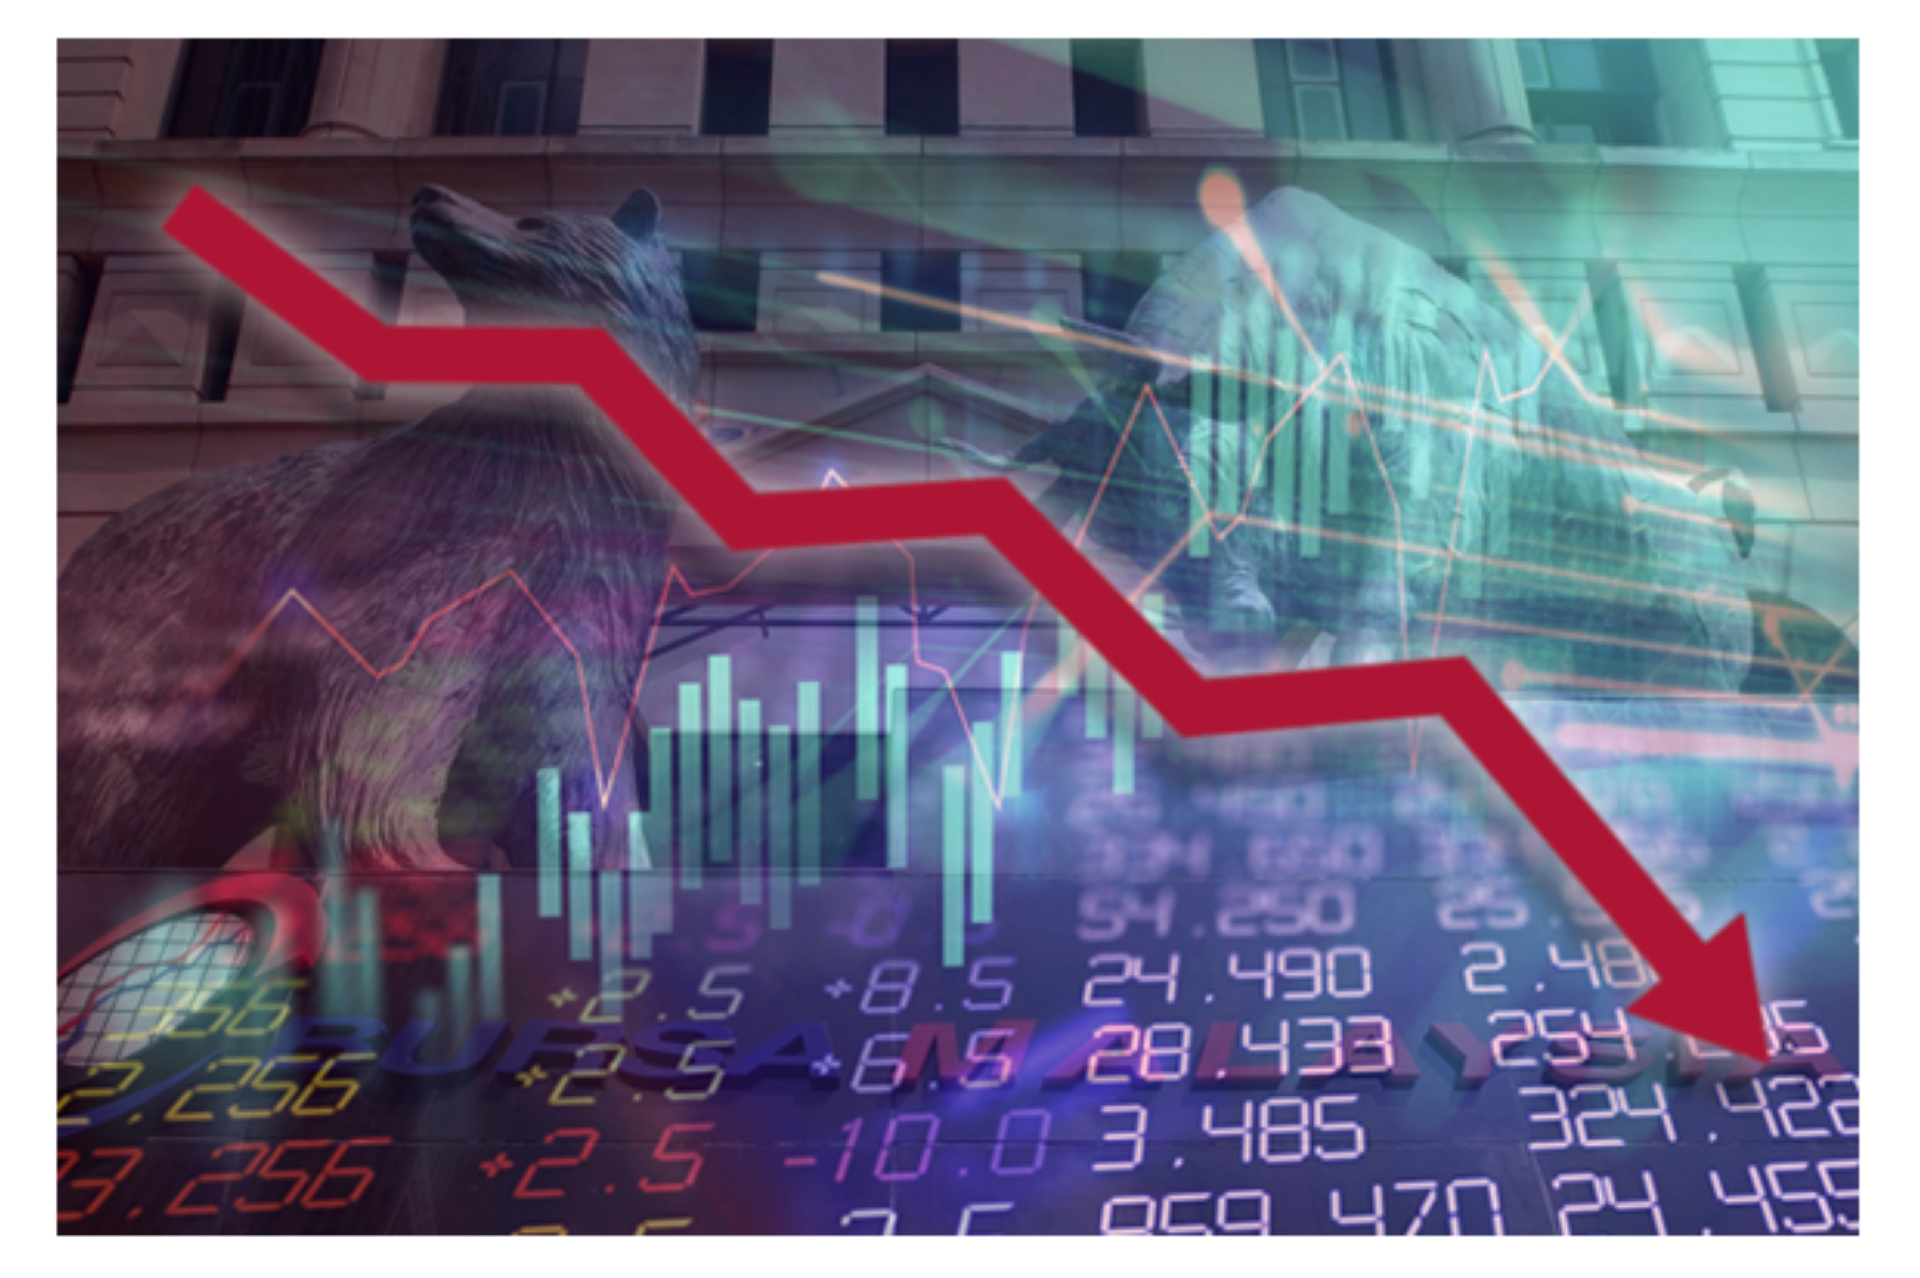 KLCI stays little changed amid caution on trade deal